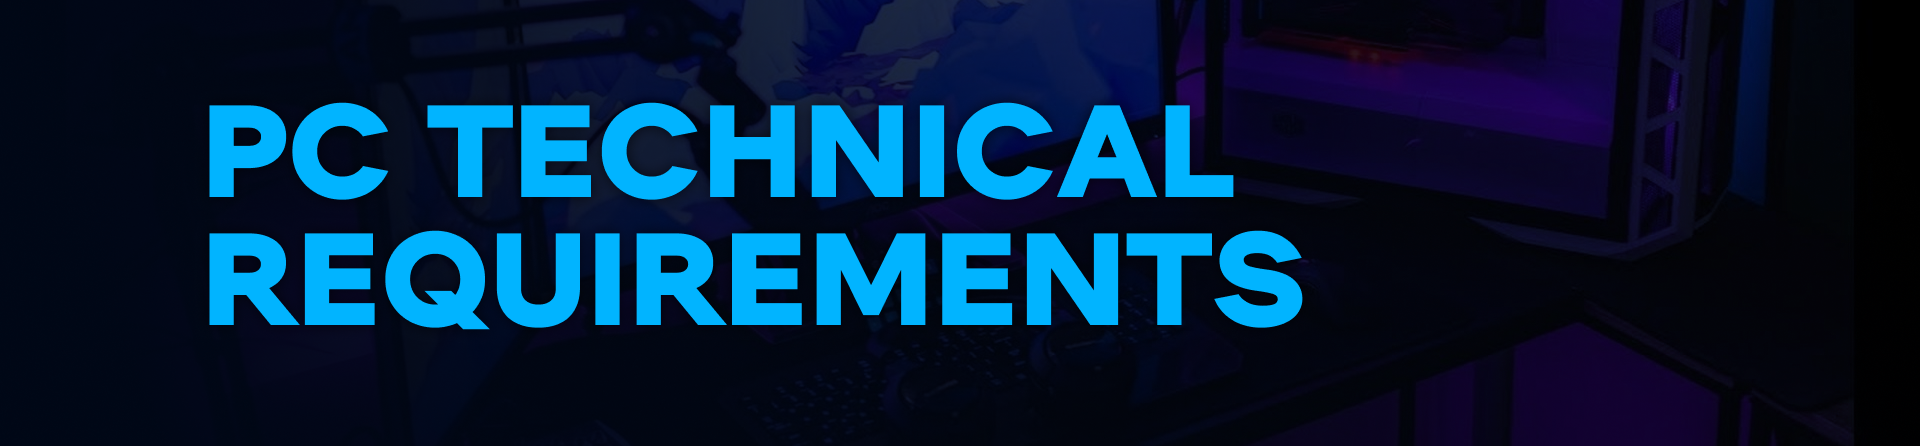 PC Technical Requirements